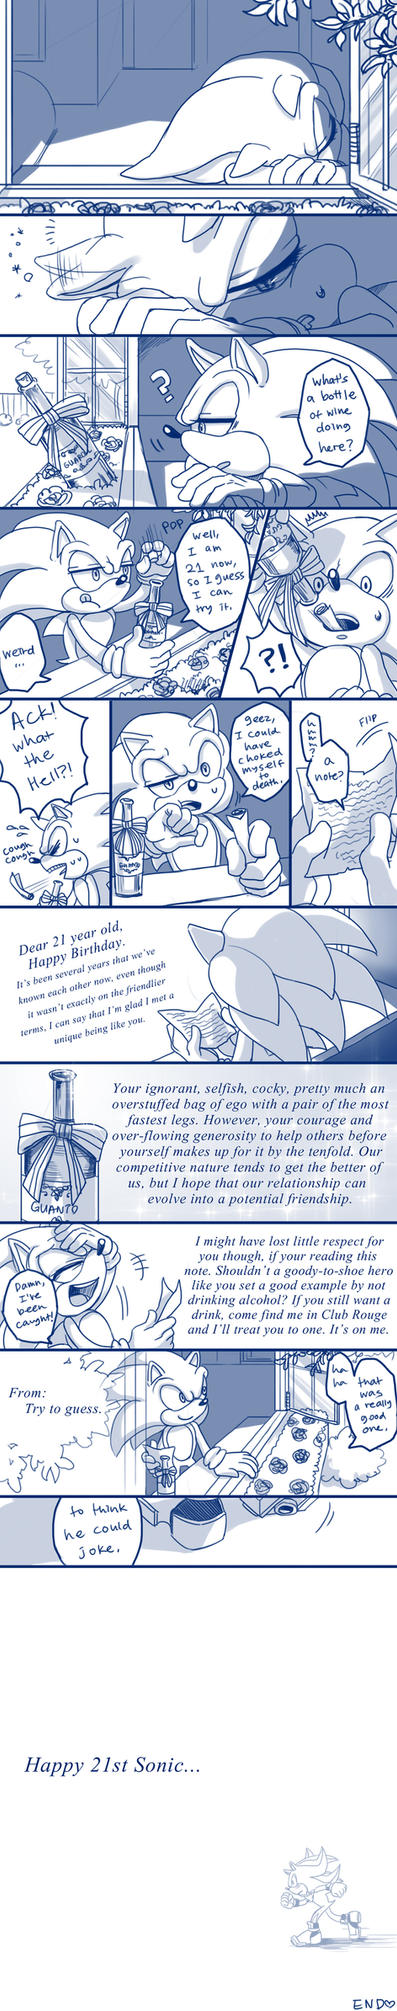 +HAPPY 21ST SONIC+ by C2ndy2c1d